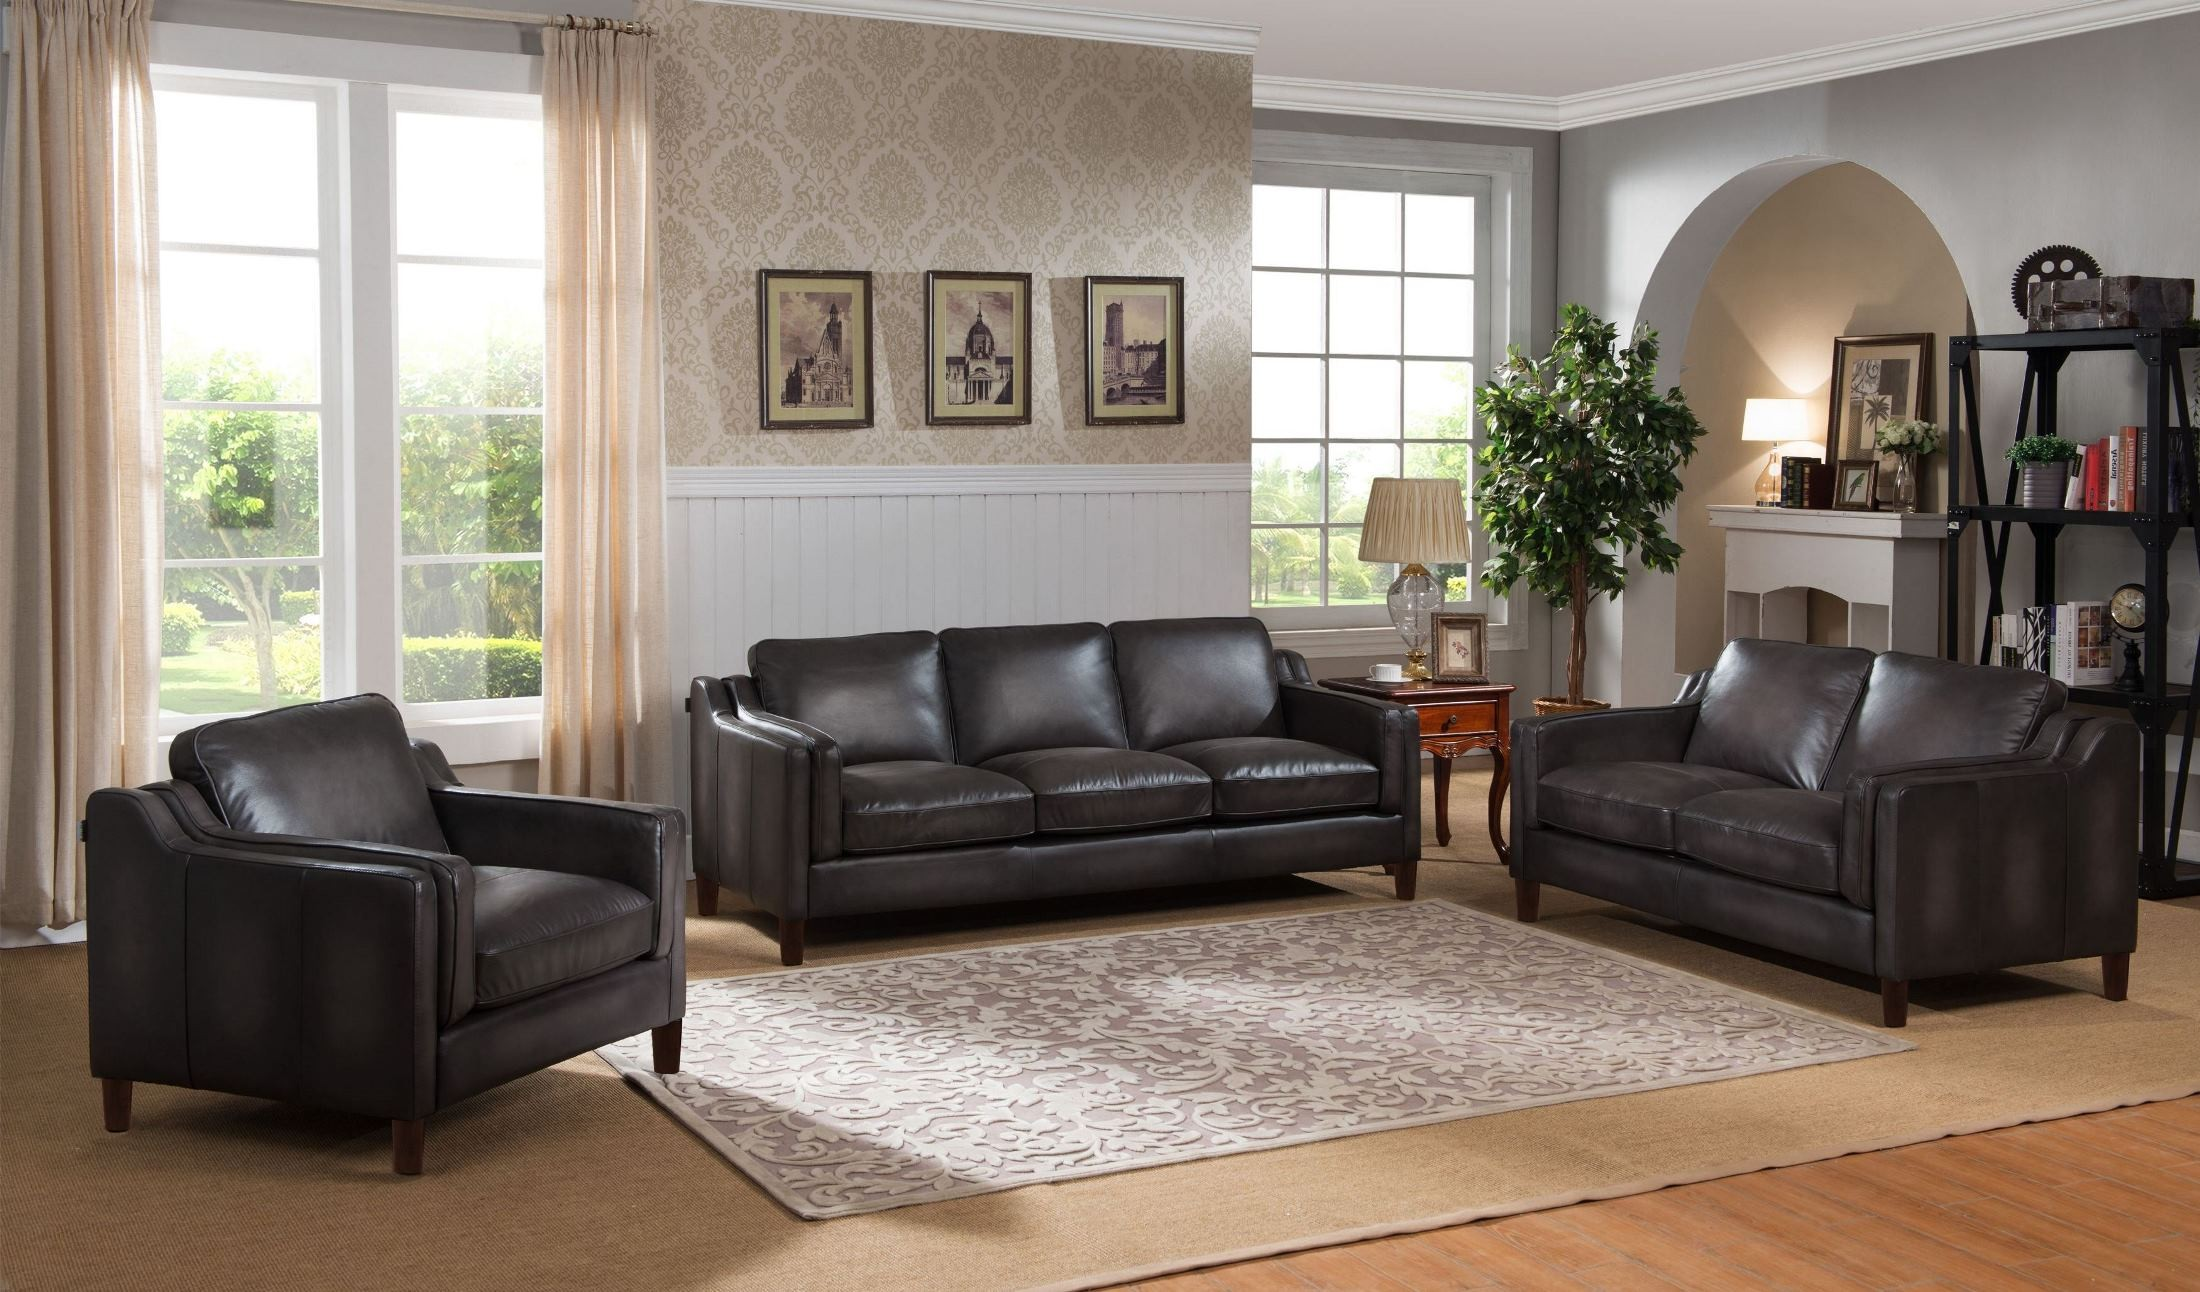 Ballari weathered grey leather living room set from amax for Grey front room furniture